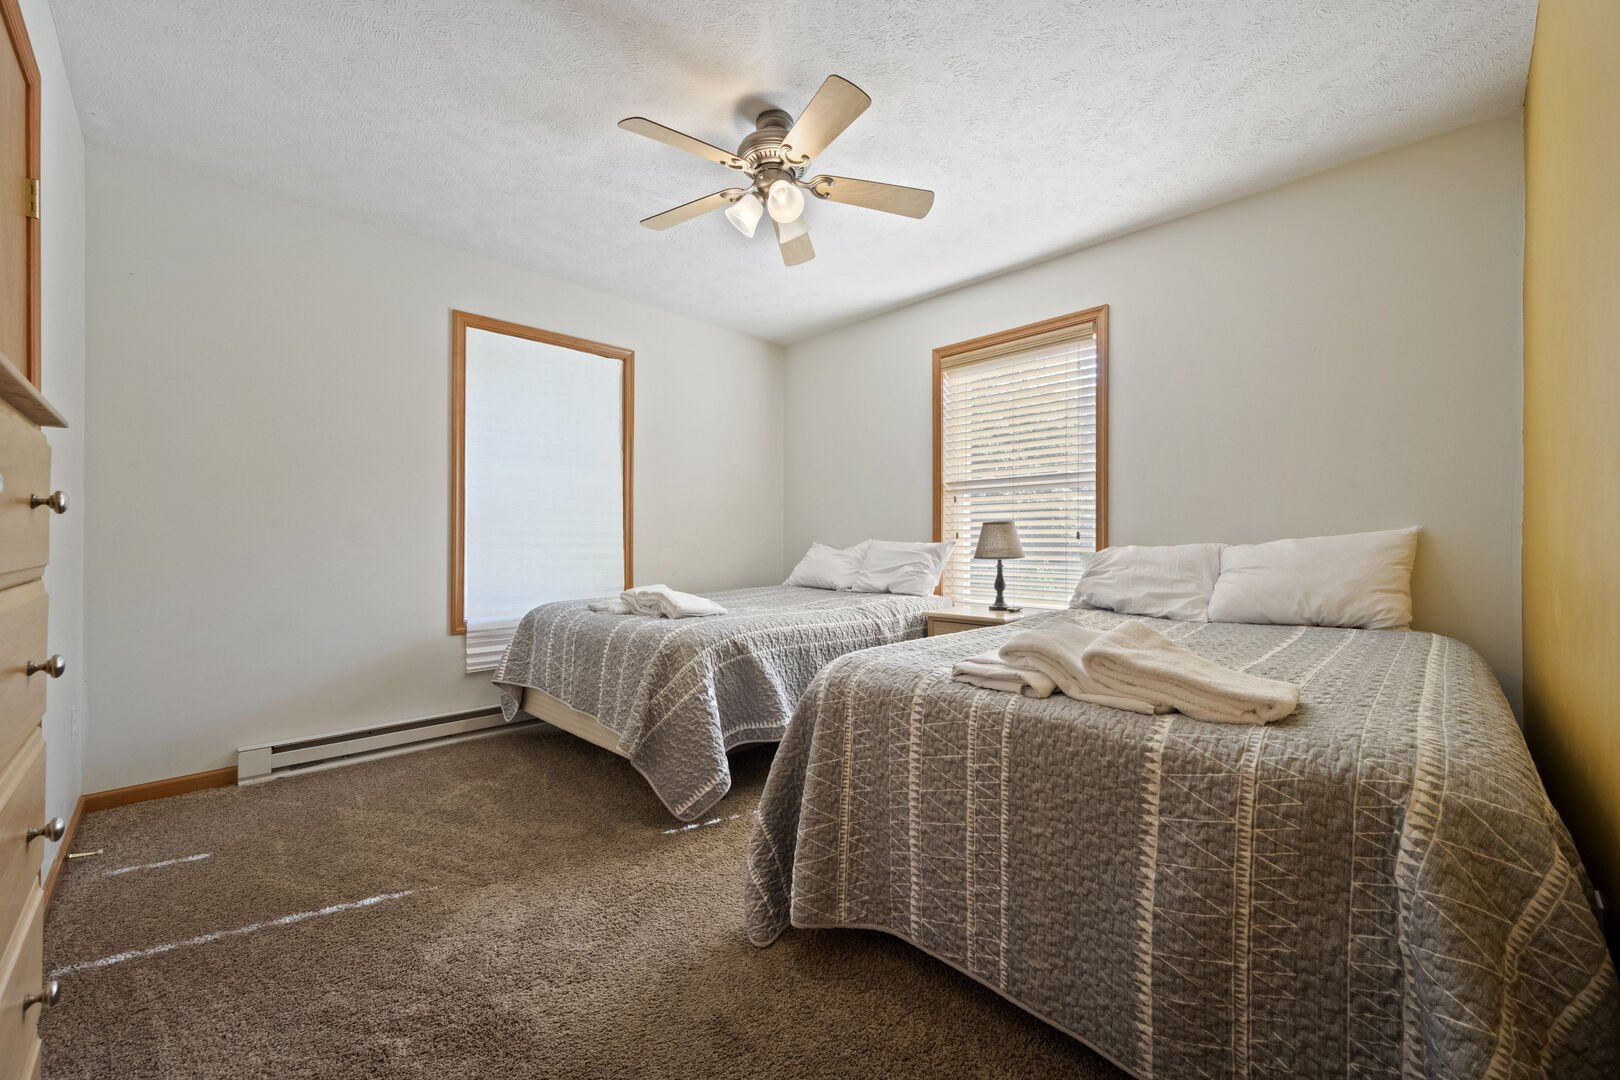 Bedroom with two beds and a ceiling fan.